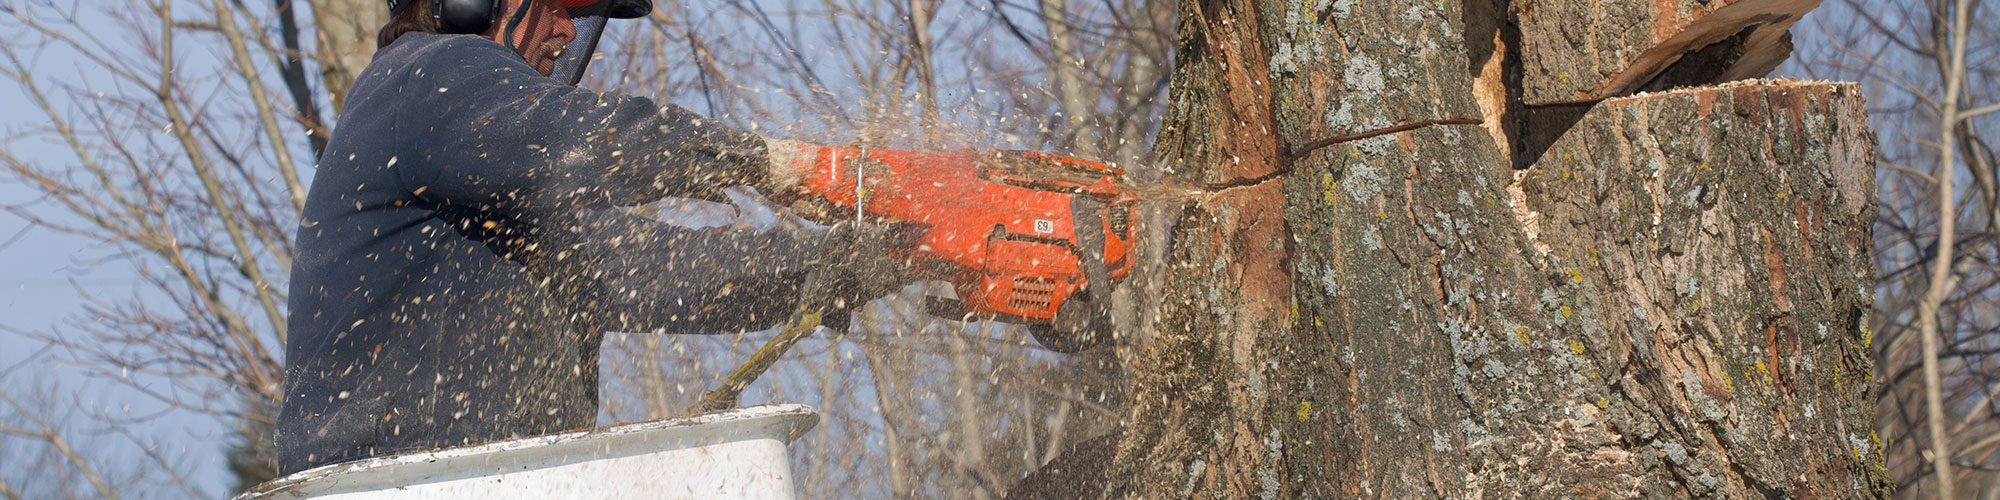 What things to take care of with tree pruning?